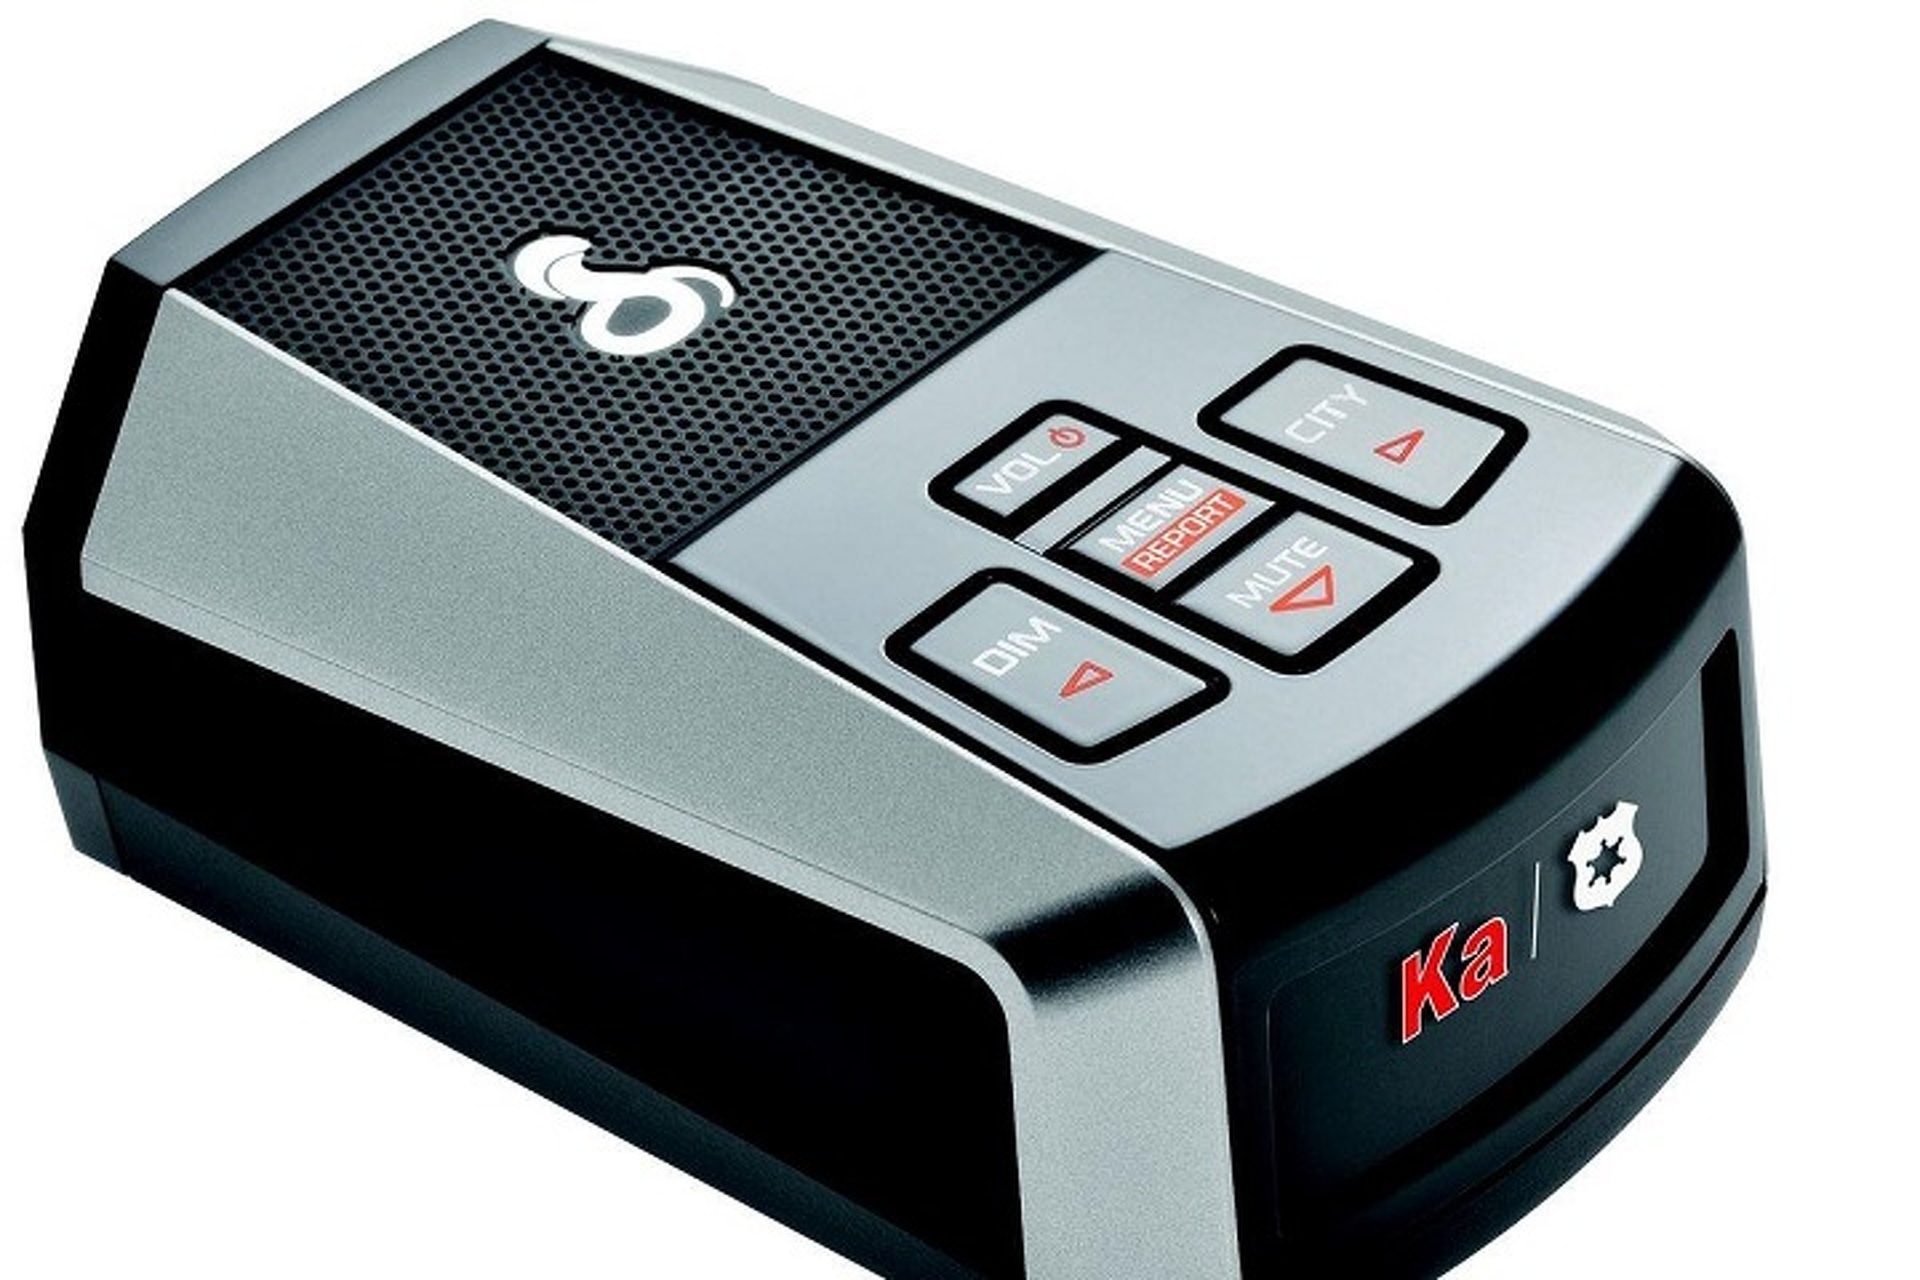 The Best Road Trip Companion: Cobra DSP 9200 BT Radar Detector